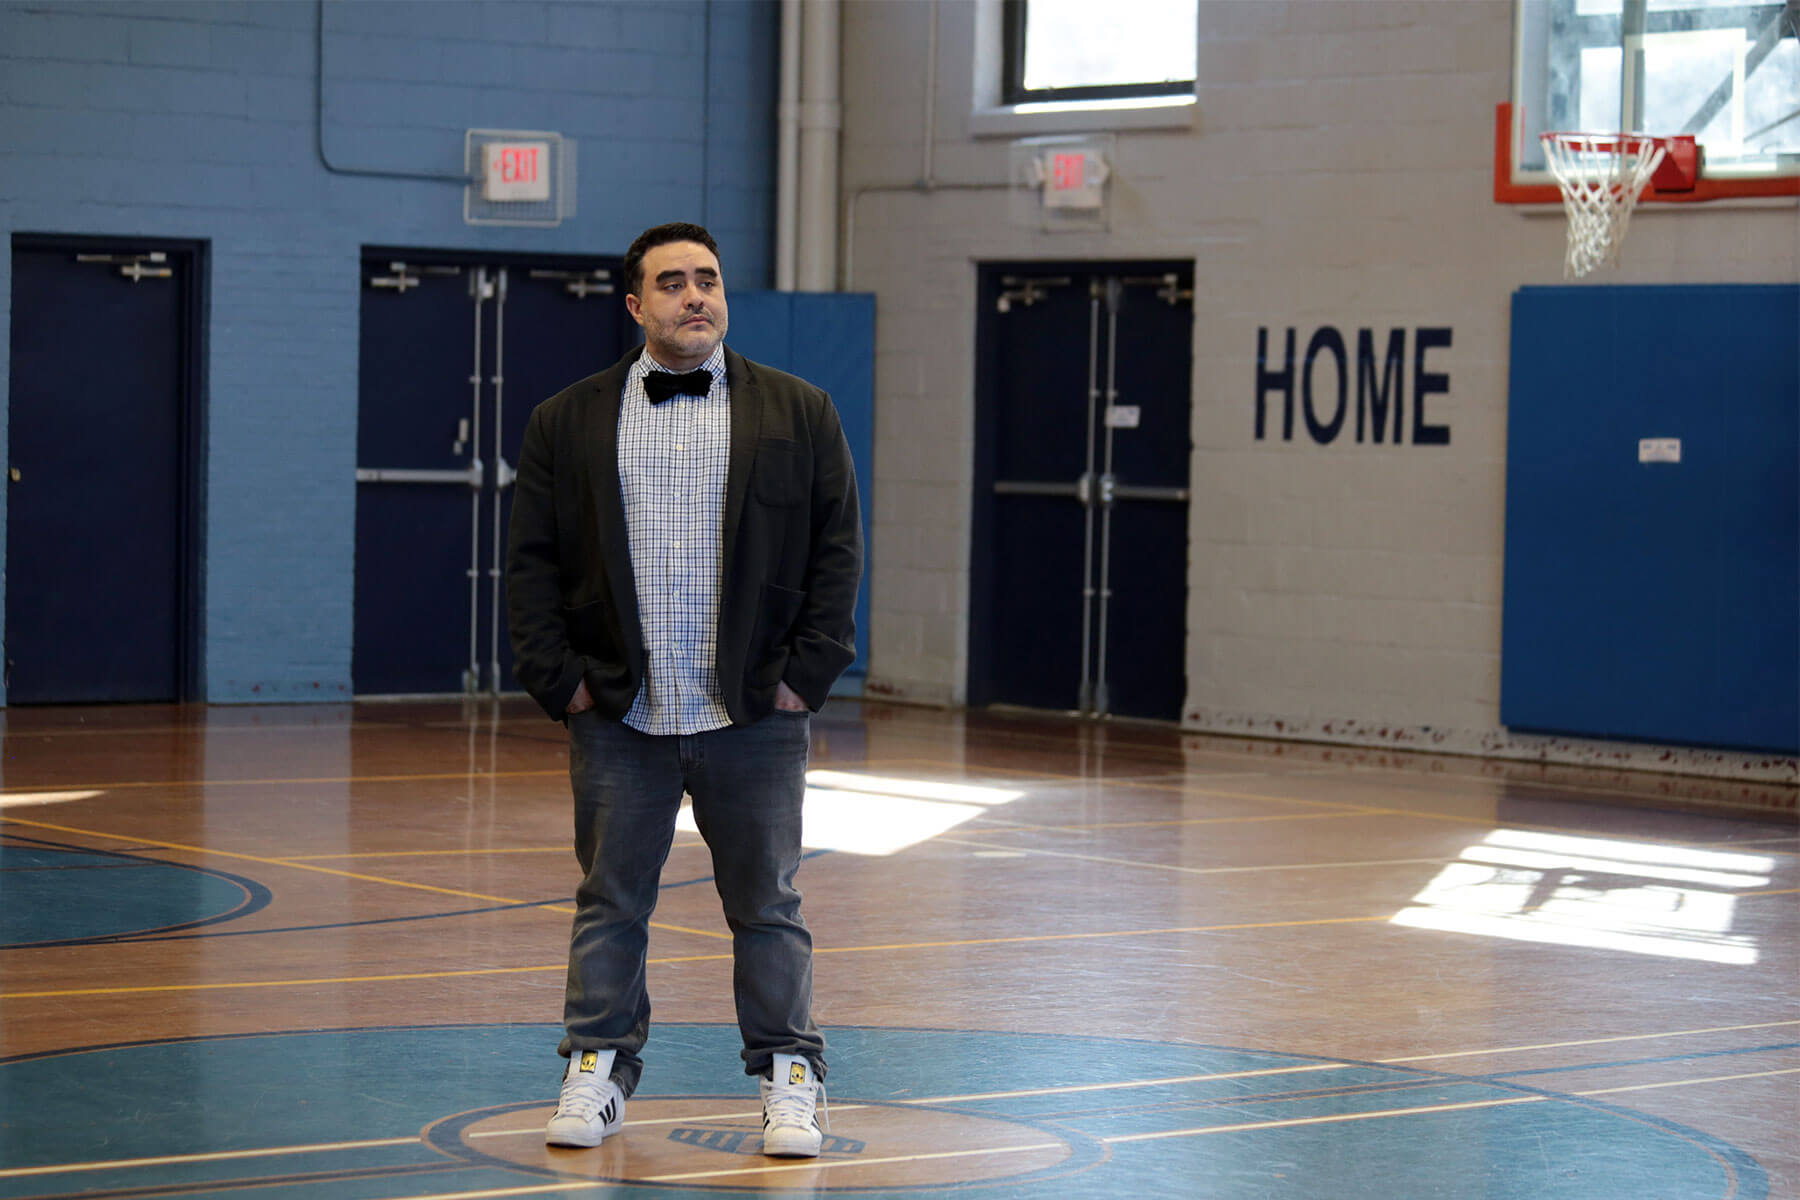 Juan Perez is senior director of program excellence at Boys & Girls Clubs of Western Pennsylvania's Carnegie clubhouse. (Photo by Ryan Loew/PublicSource)